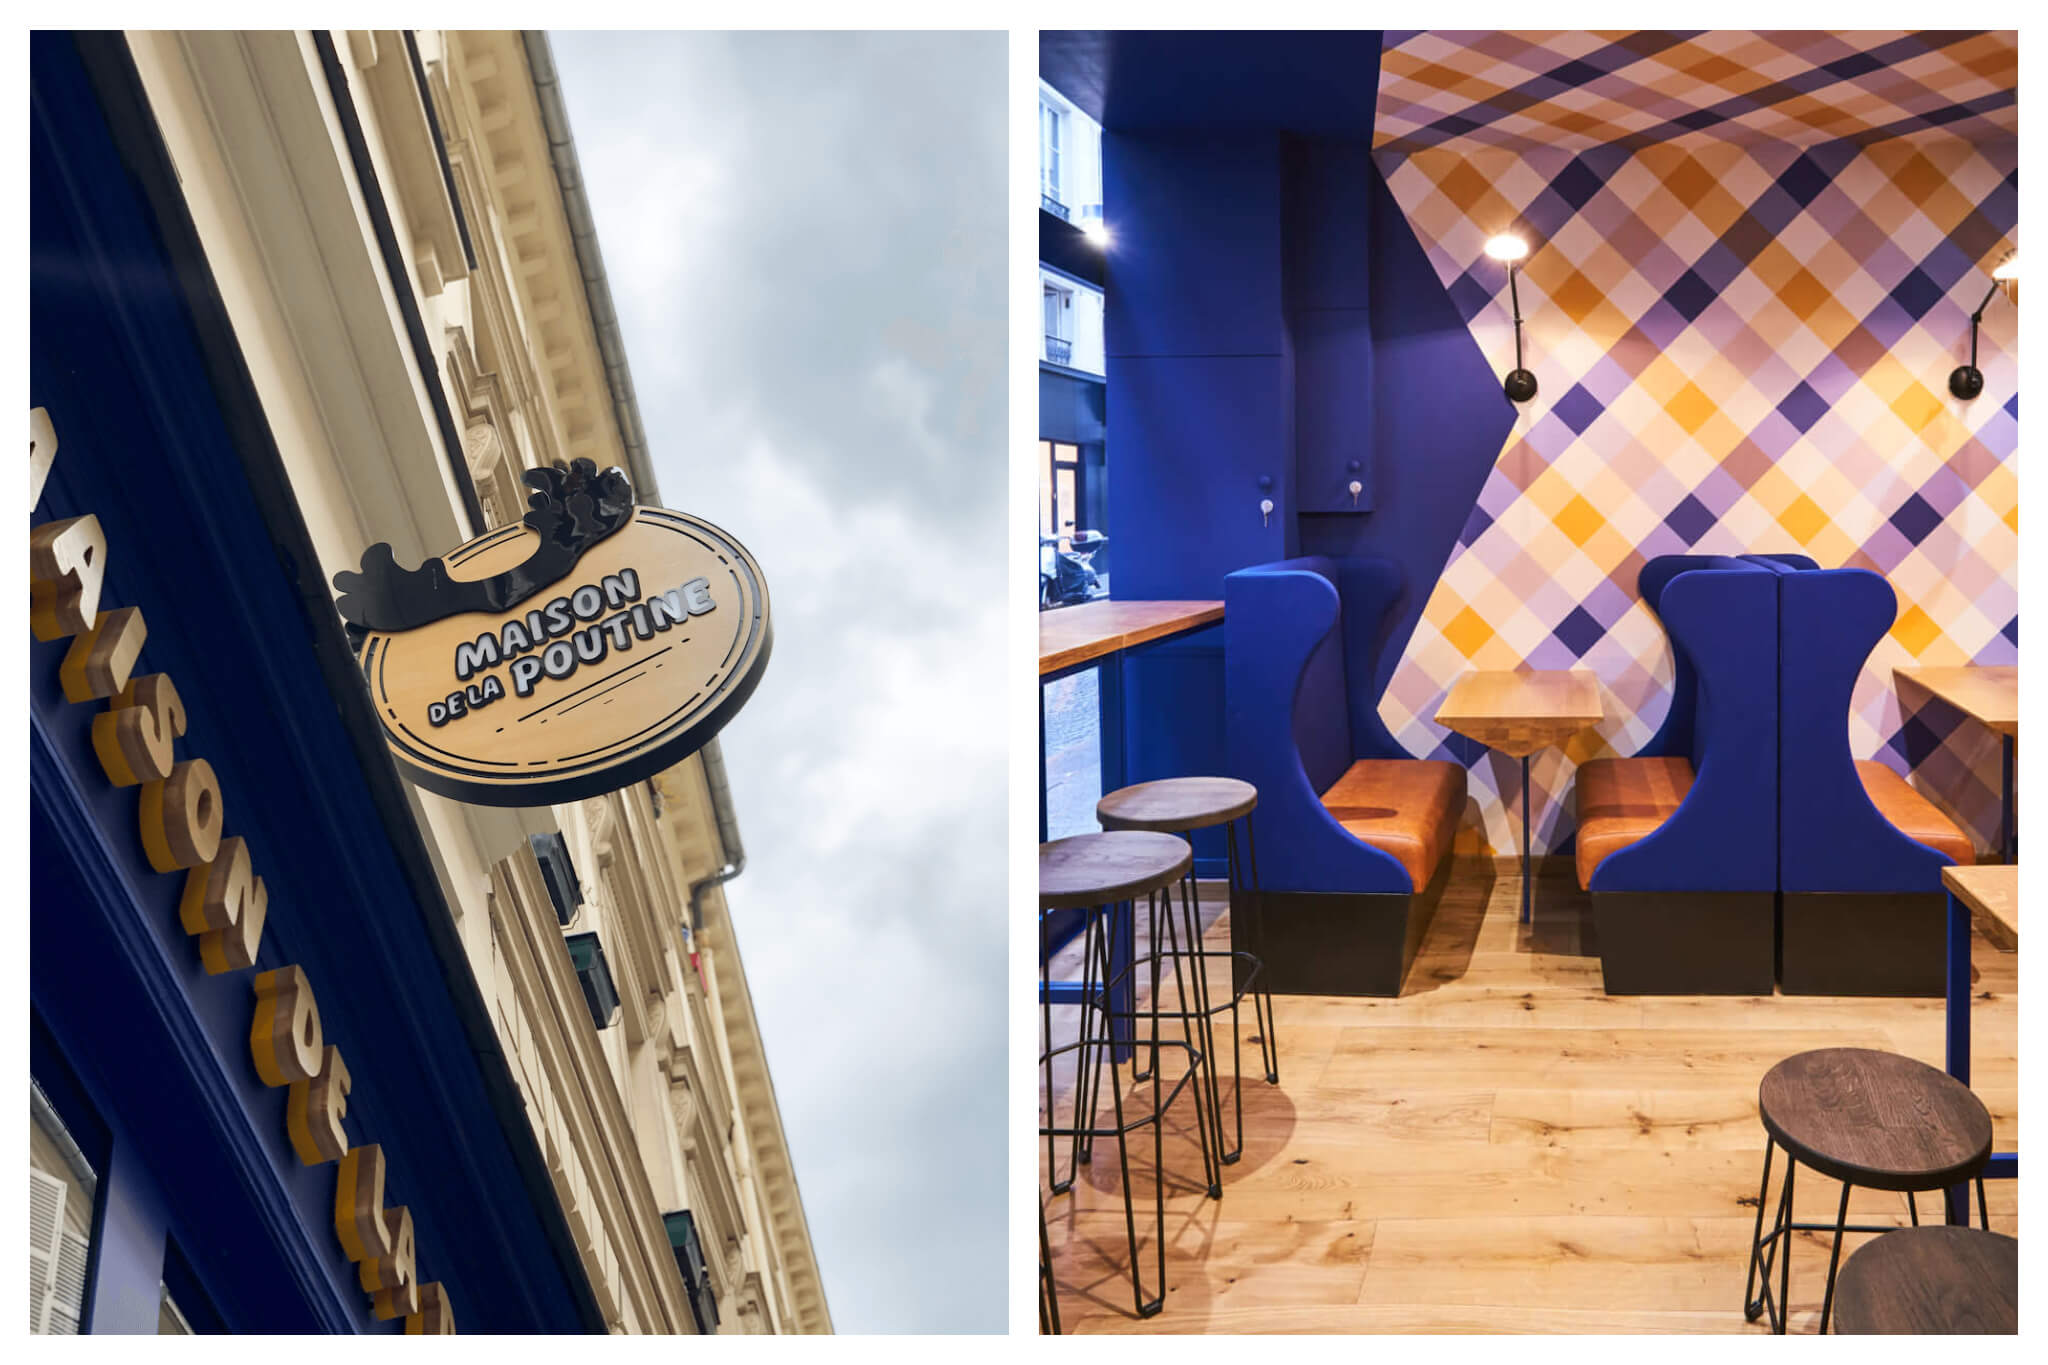 Left, the sign outside of the Maison de la Poutine in Paris. Inside the Maison de la Poutine with its royal blue interiors and booths. There are locations in Paris' 11th and 2nd arrondissements.